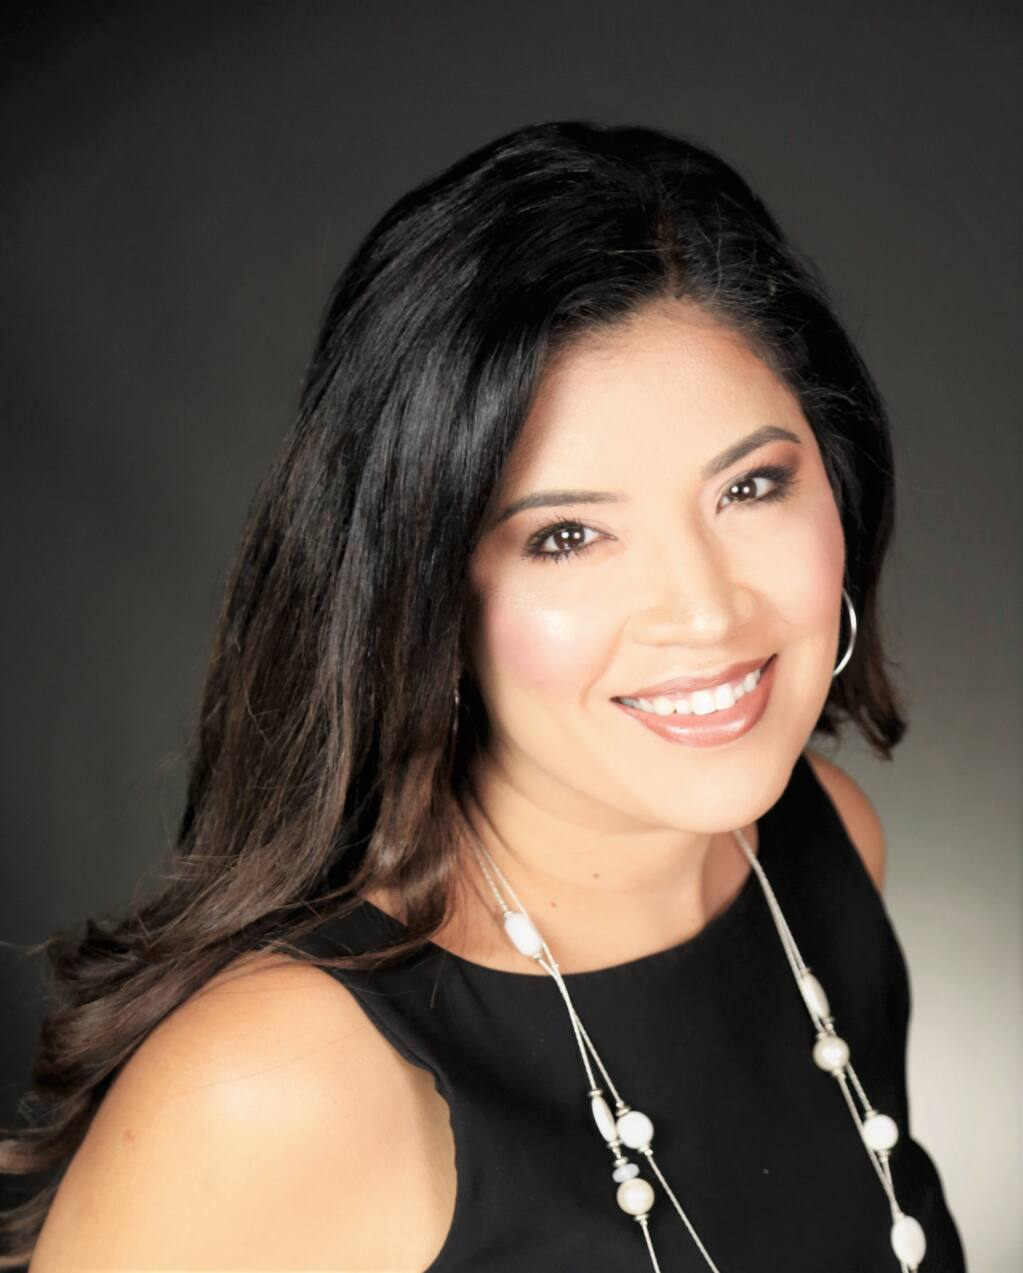 Lucy Hernandez, CEO and founder, Lucy Hernandez Consulting, Orland (courtesy photo)